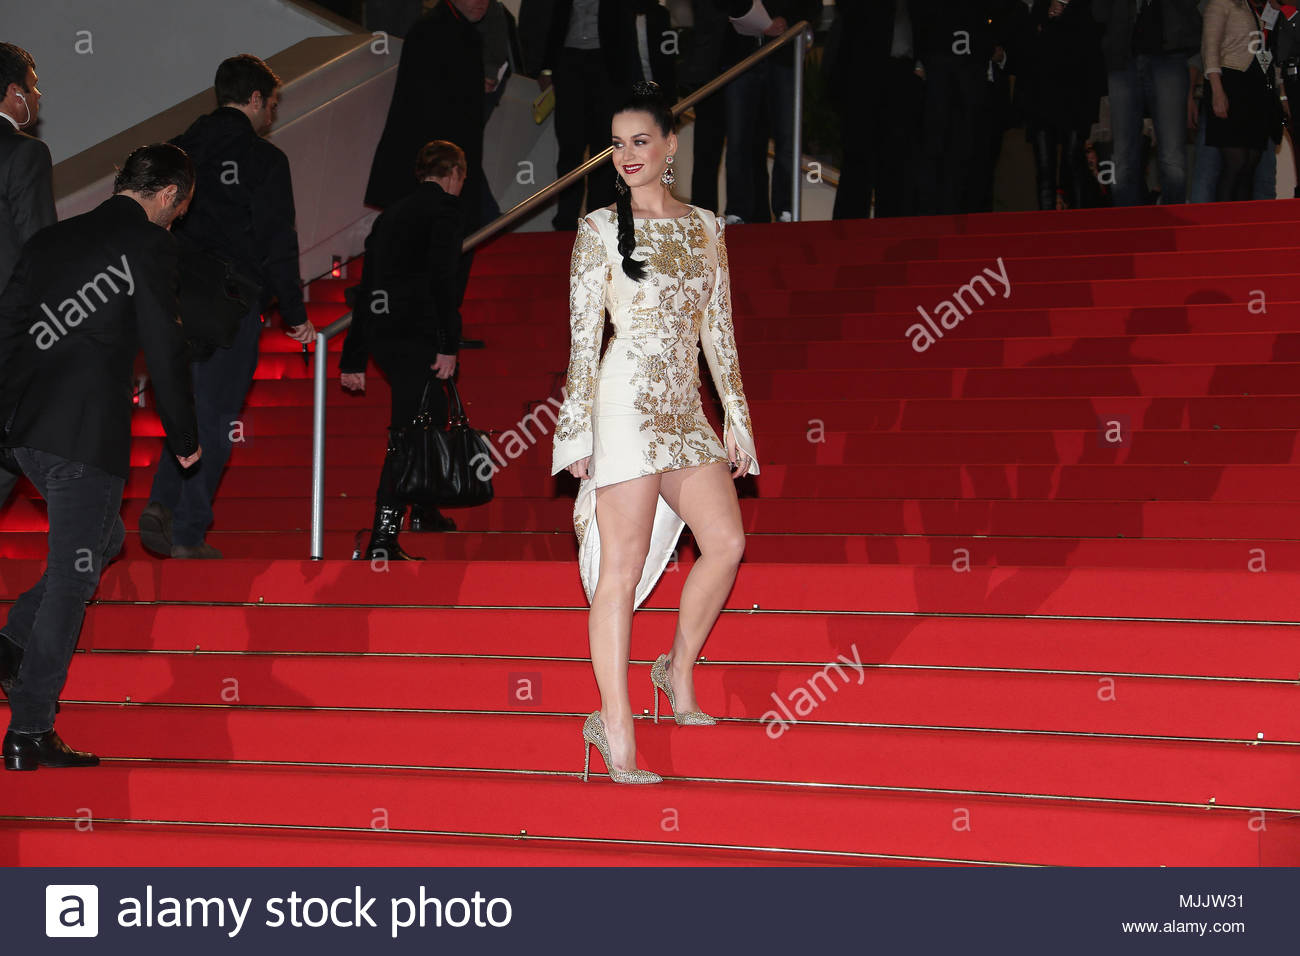 katy perry nrj awards 2013 tapis rouge pour toute arriv e le 14 d cembre 2013 banque d 39 images. Black Bedroom Furniture Sets. Home Design Ideas